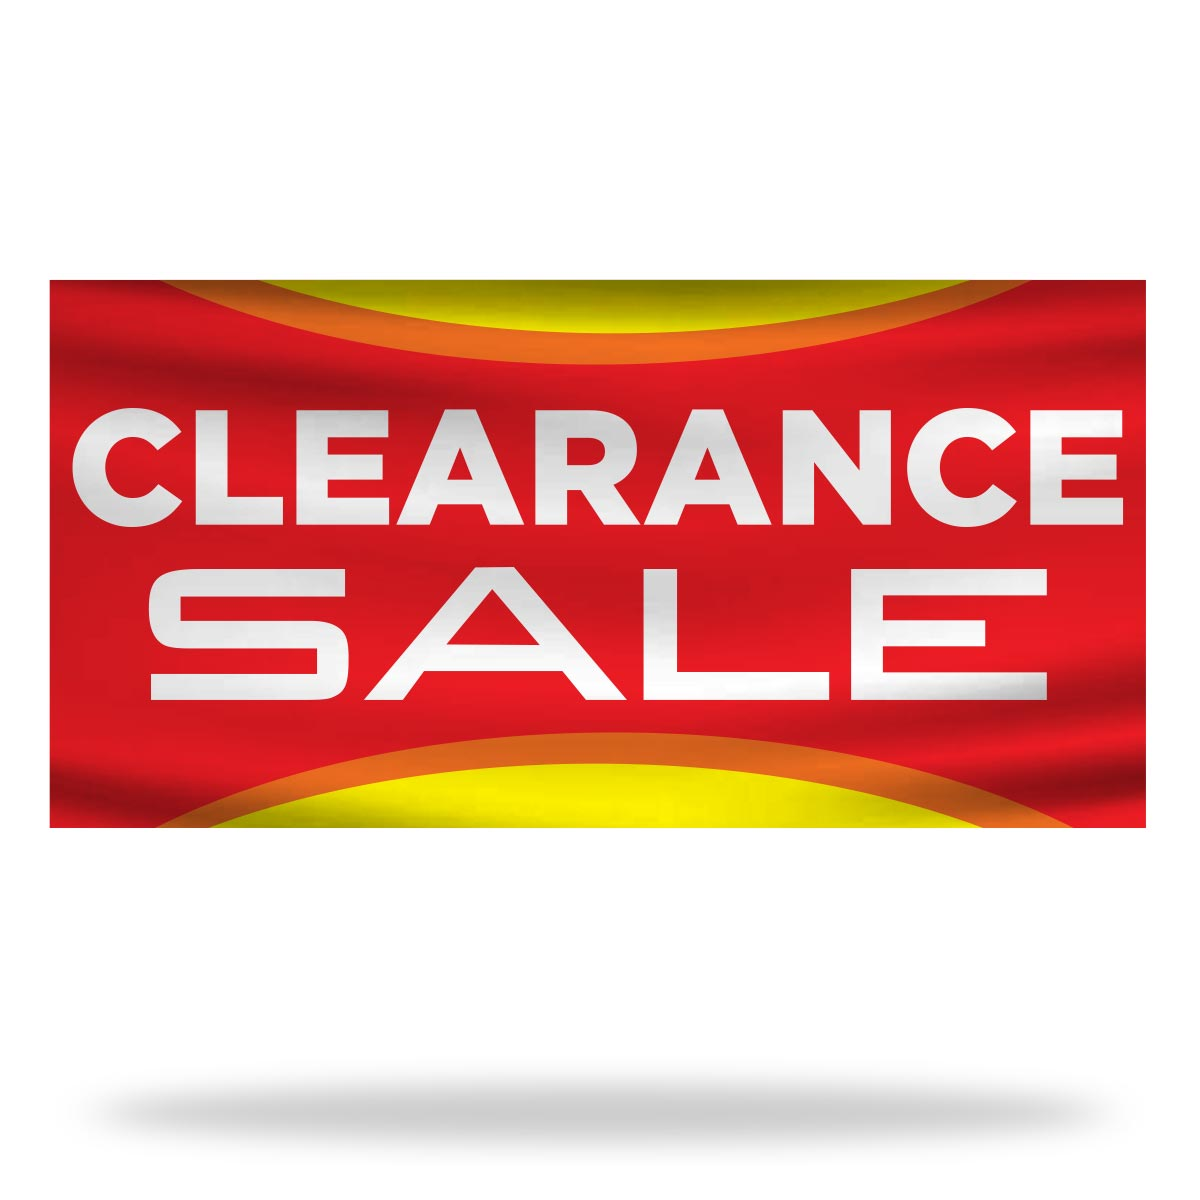 Clearance Flags & Banners Design 02